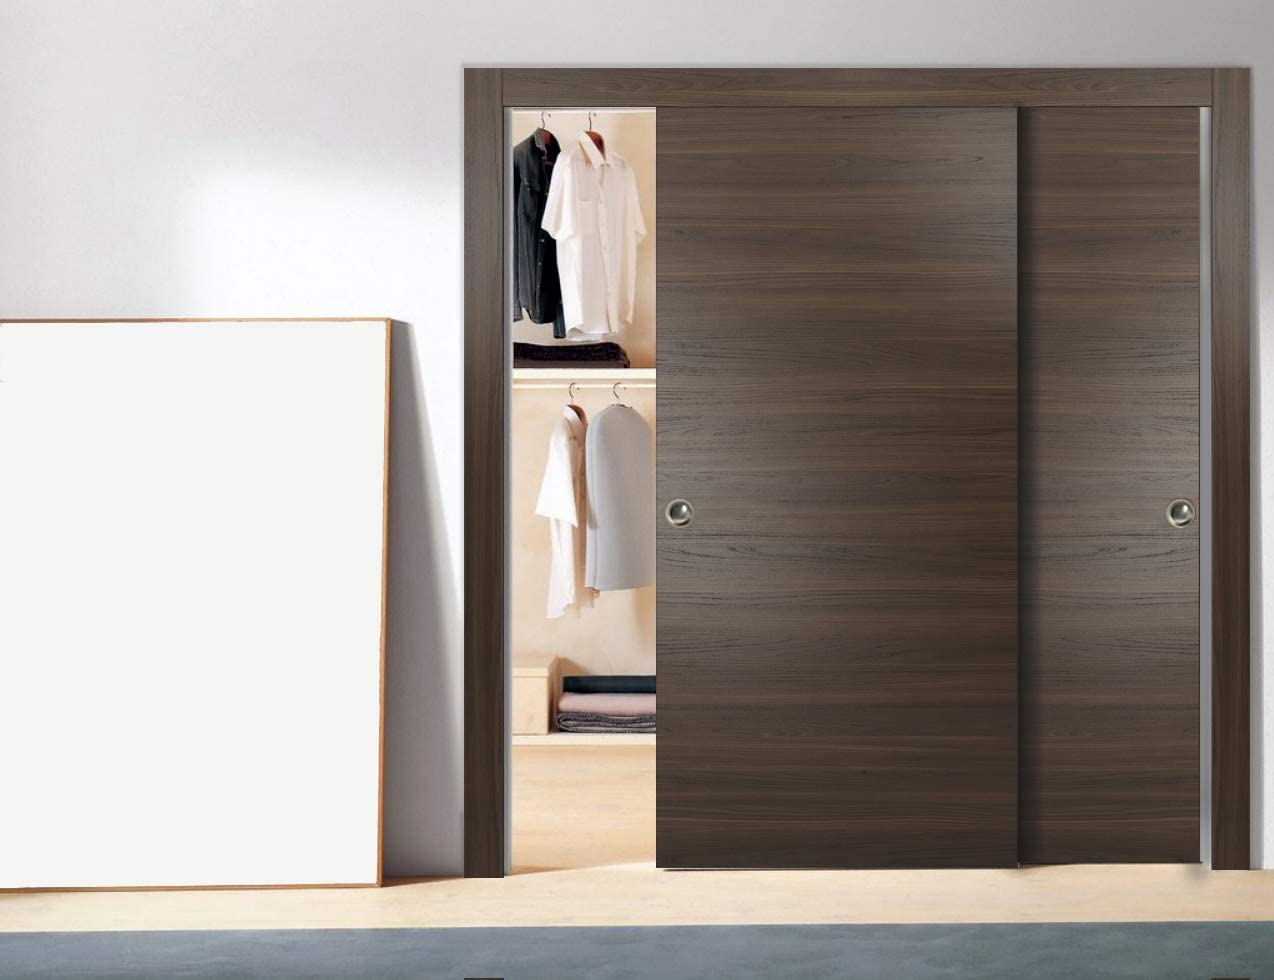 Bypass Closet Doors 72 X 80 Inches With Hardware Planum 0010 Chocolate Ash Wheels Pulls Rails Heavy Sturdy Solid Doors Amazon Com